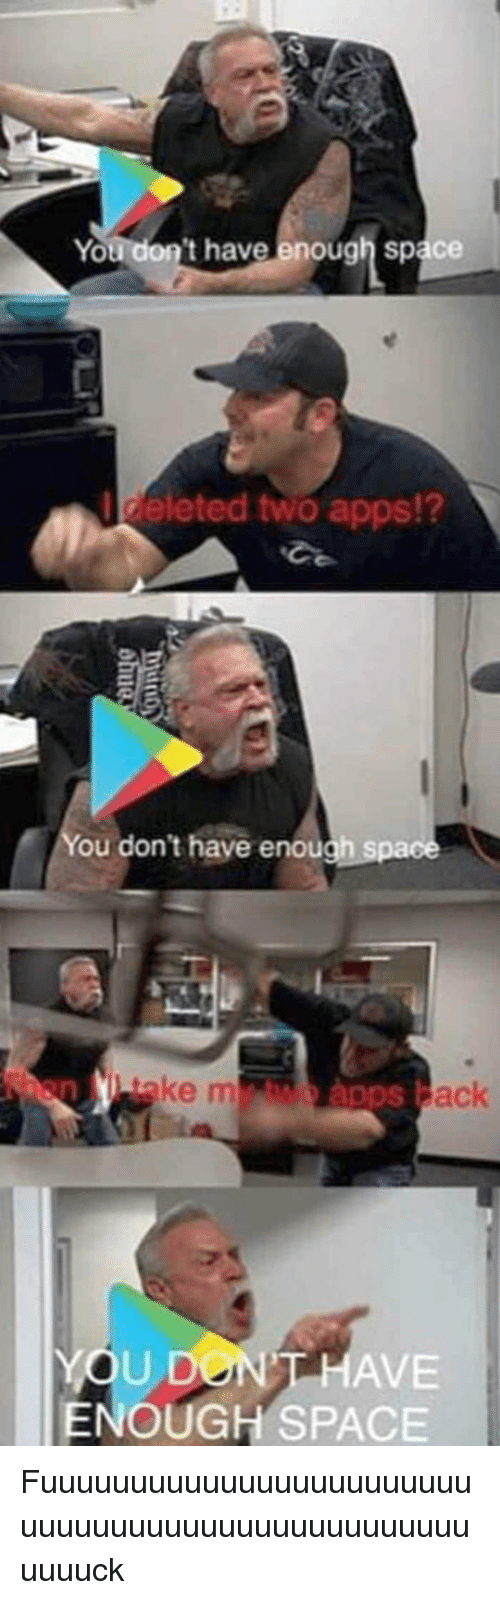 Reddit, Apps, and Space: You don't have enough space  deleted two apps!?  12  ou don't have enough spa  ke m  ack  YOU DON  ENOUGH SPACE  HAVE